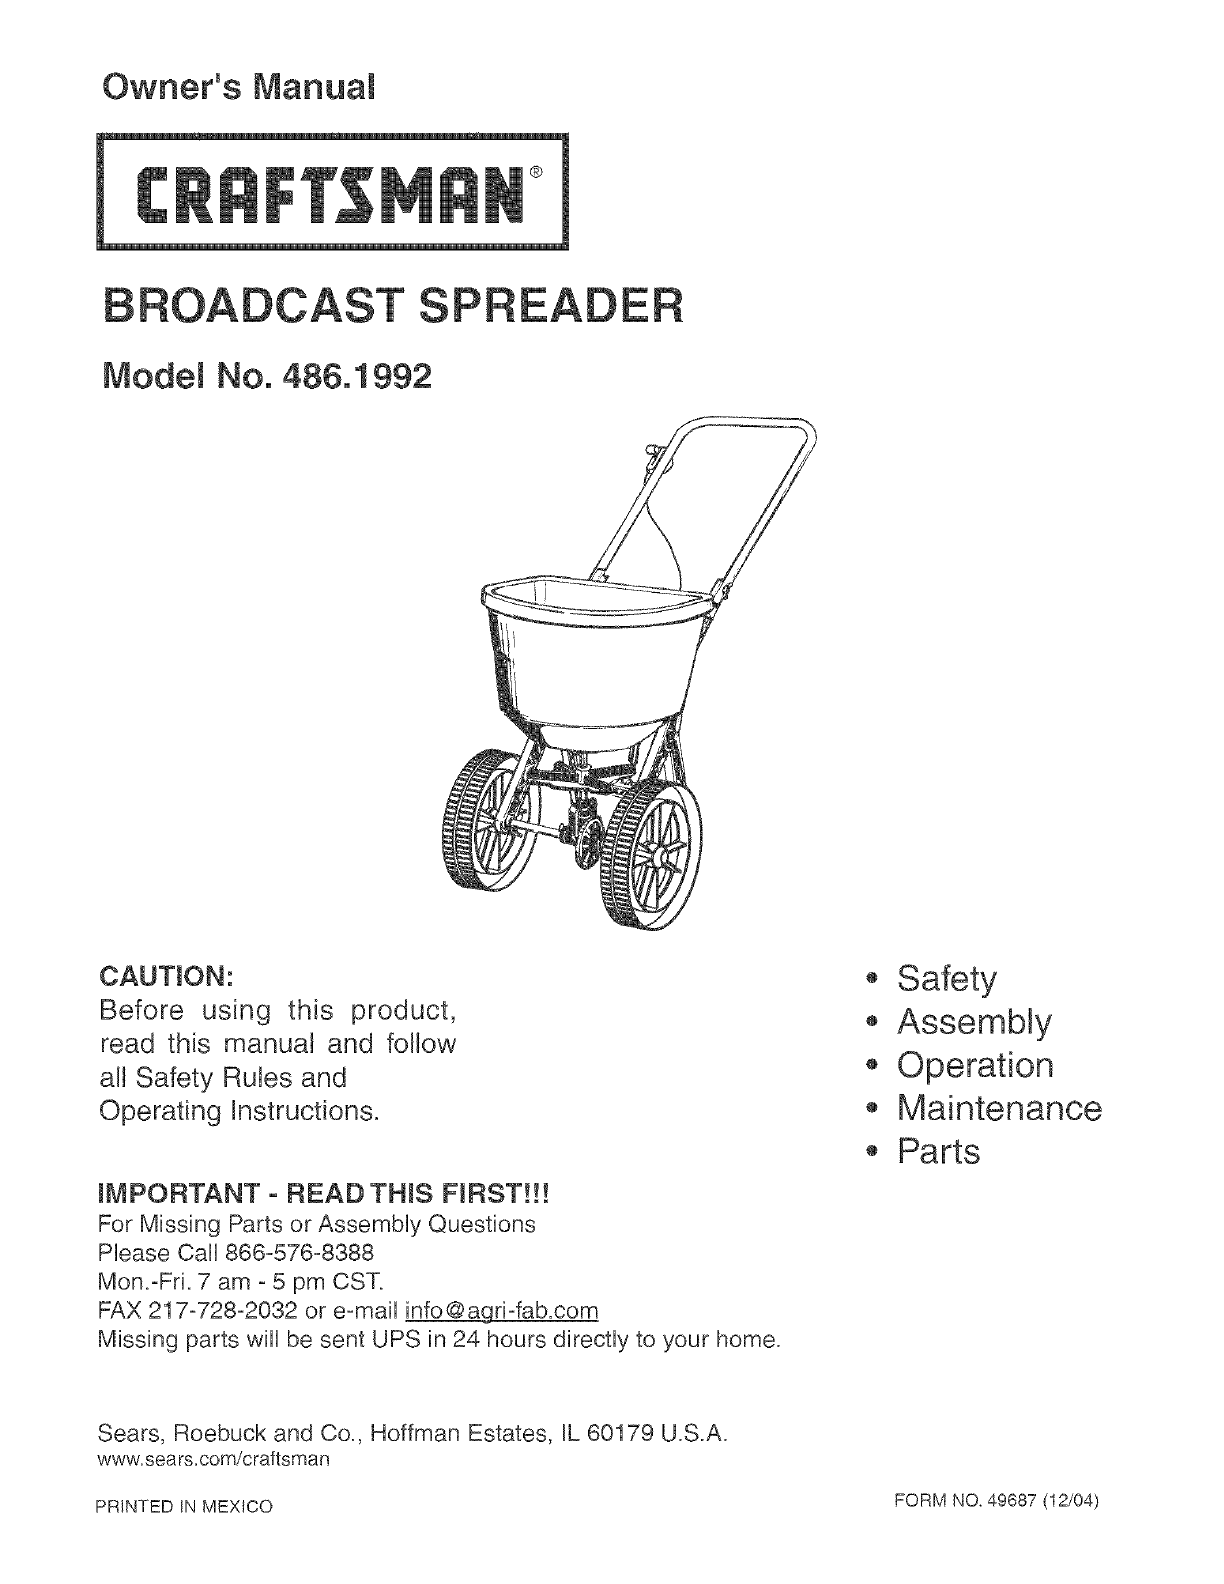 craftsman 4861992 user manual broadcast spreader manuals and guides rh usermanual wiki Craftsman Lawn Tractor Manual Craftsman Snow Blower Manuals 24788190 0